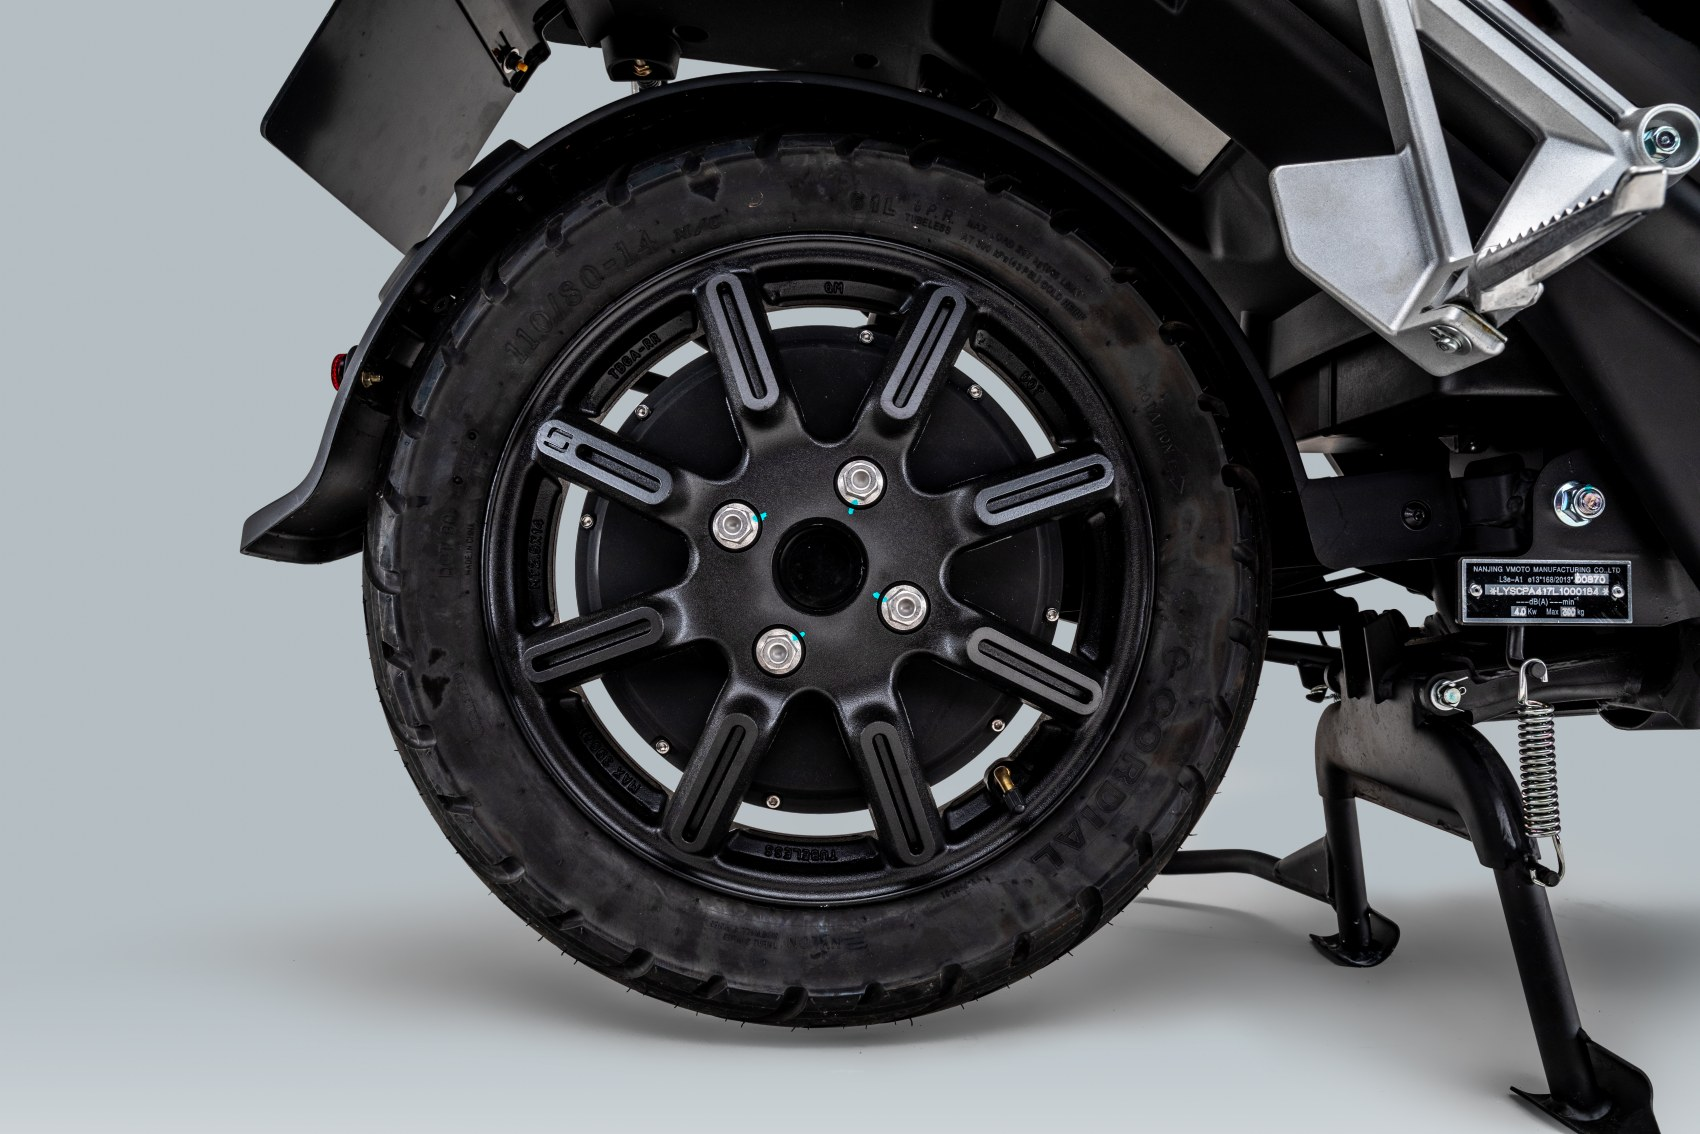 Super Soco CPx electric scooter hub motor and rear wheel